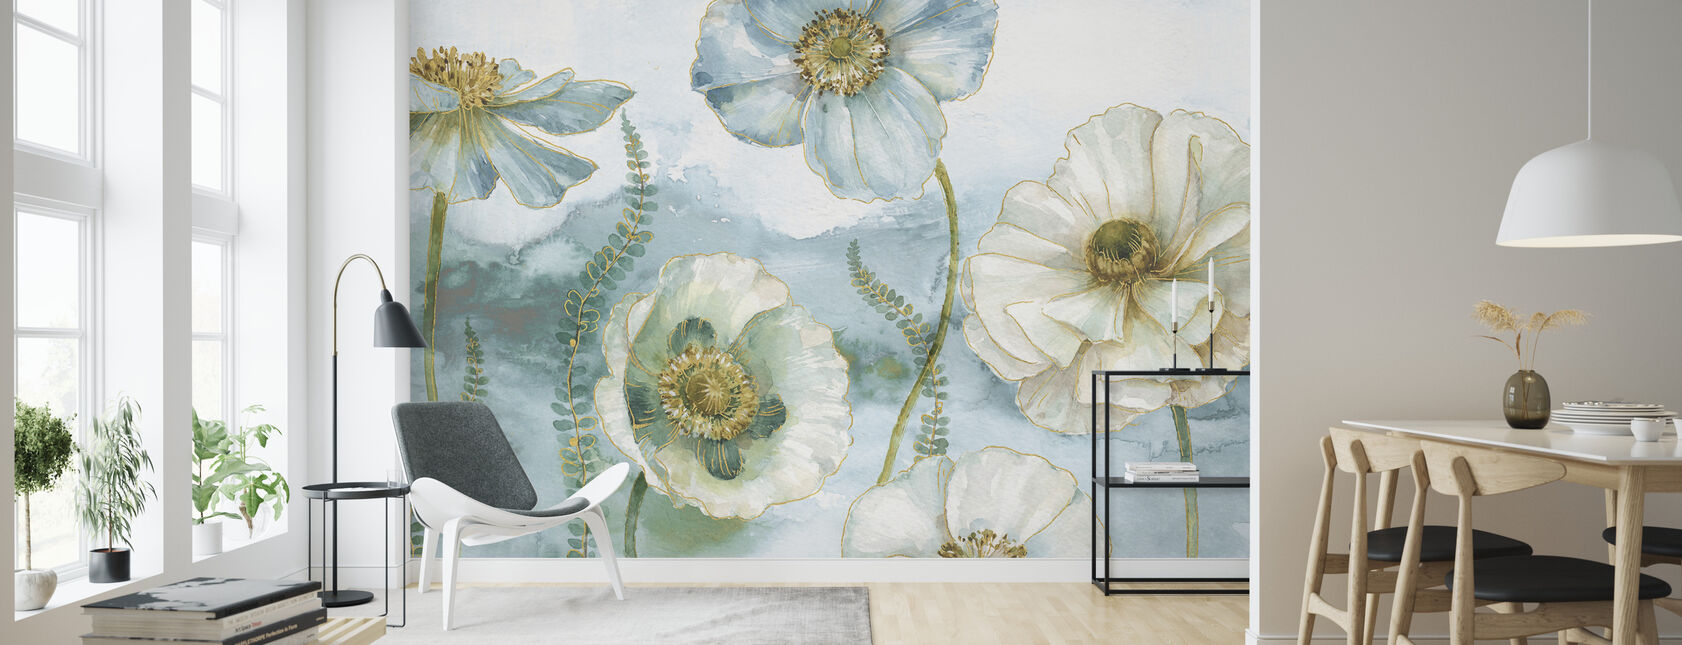 My Greenhouse Flowers - Wallpaper - Living Room